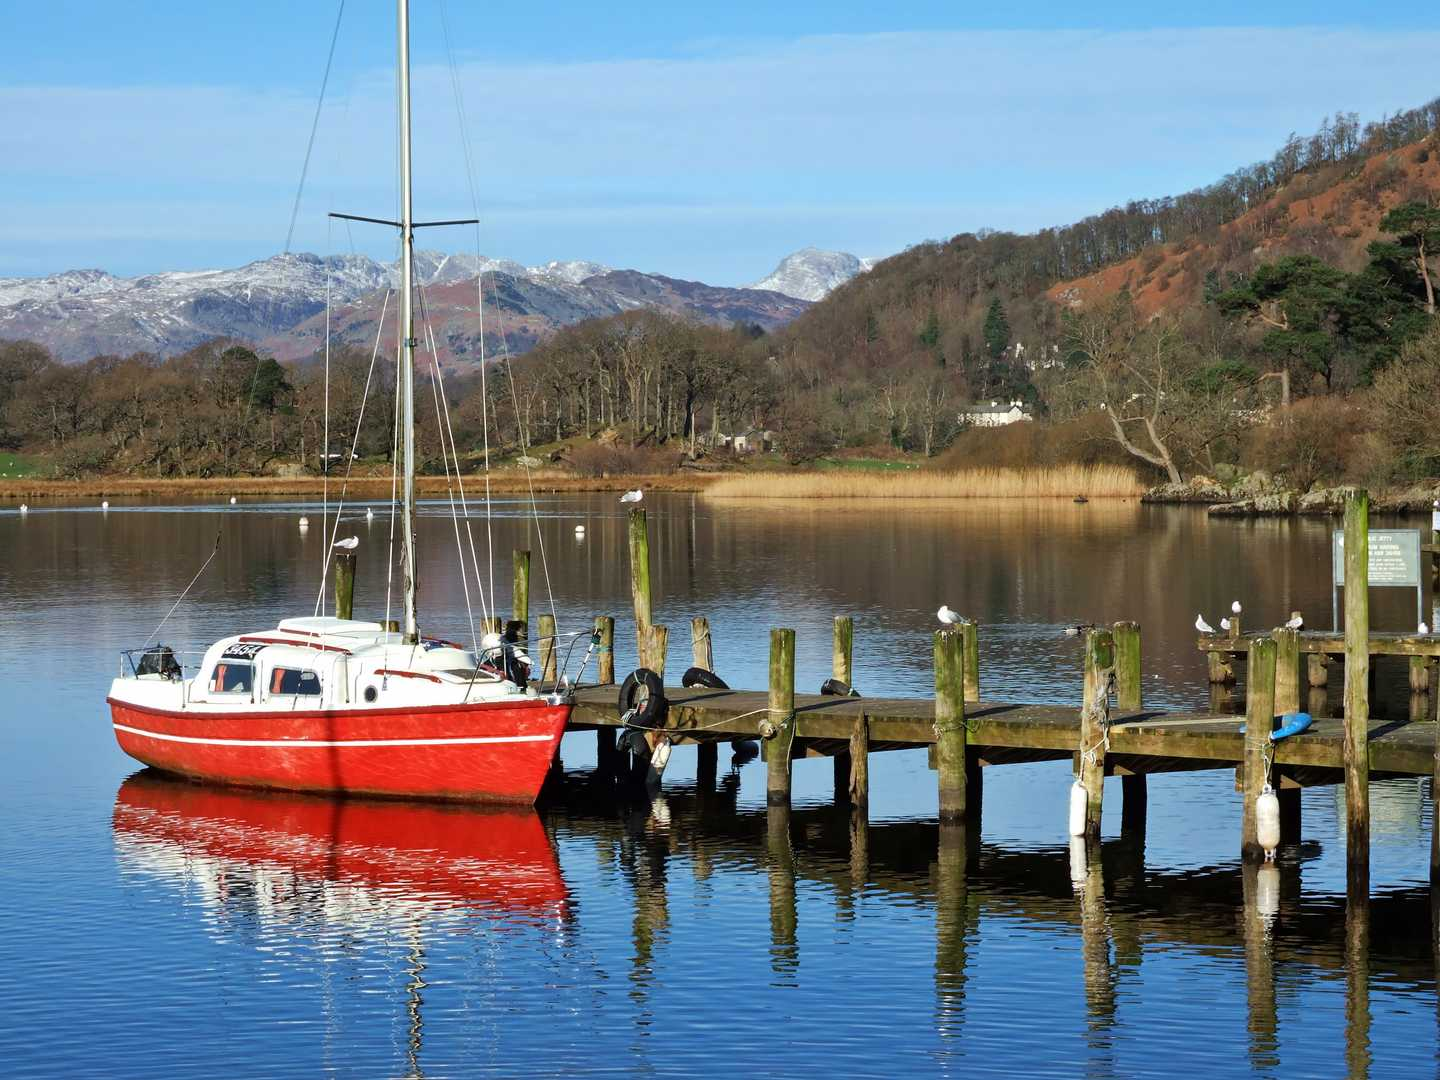 A red and white boat on Lake Windermere